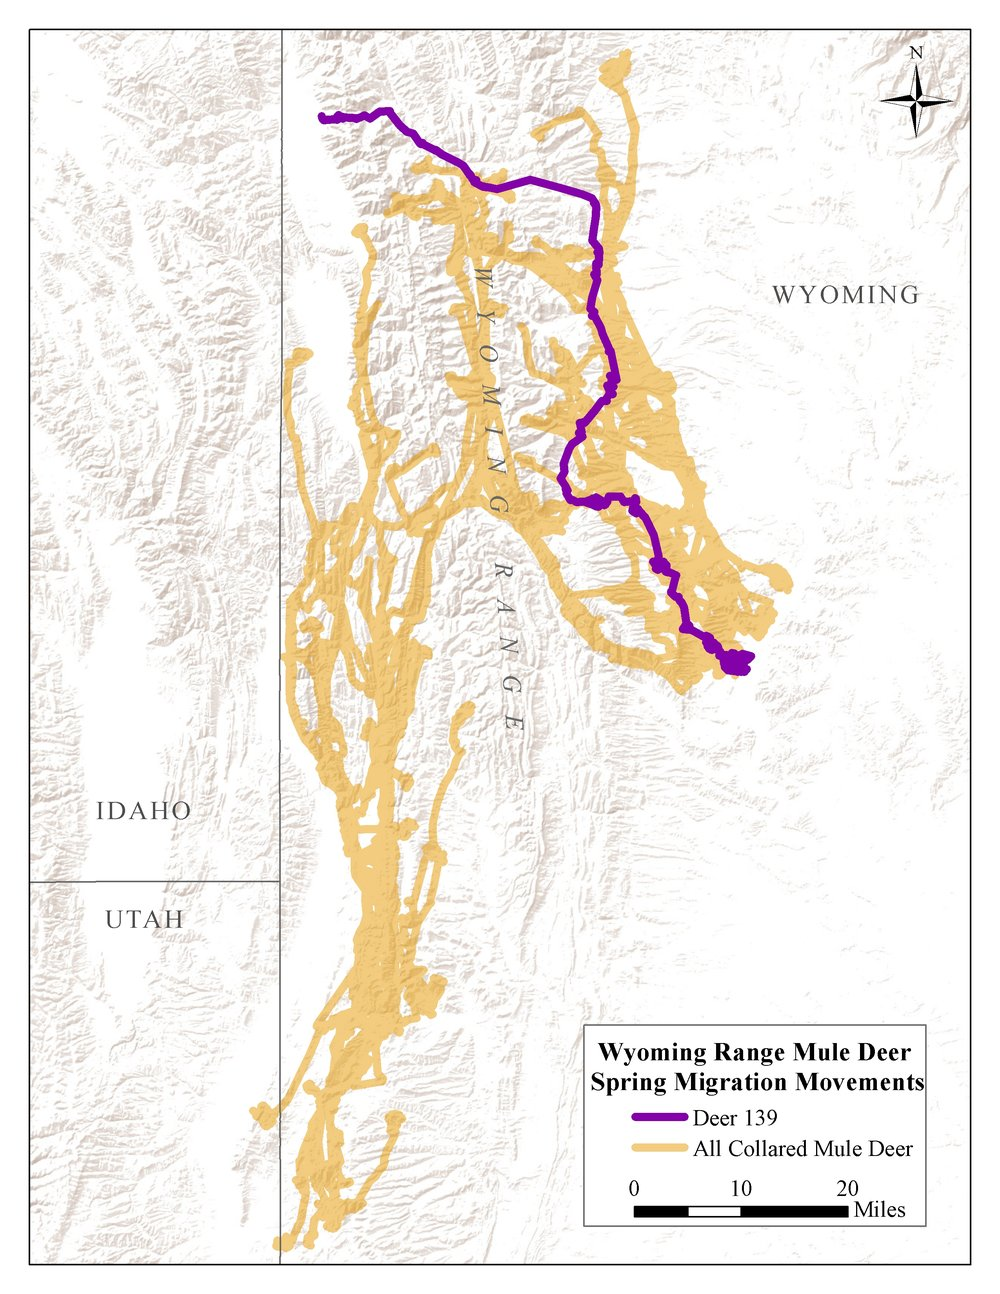 In spring 2016, dozens of collared mule deer (orange lines) migrated into the high mountains of western Wyoming. Deer 139 (purple line) traveled 85 miles through the Wyoming and Salt River Ranges.